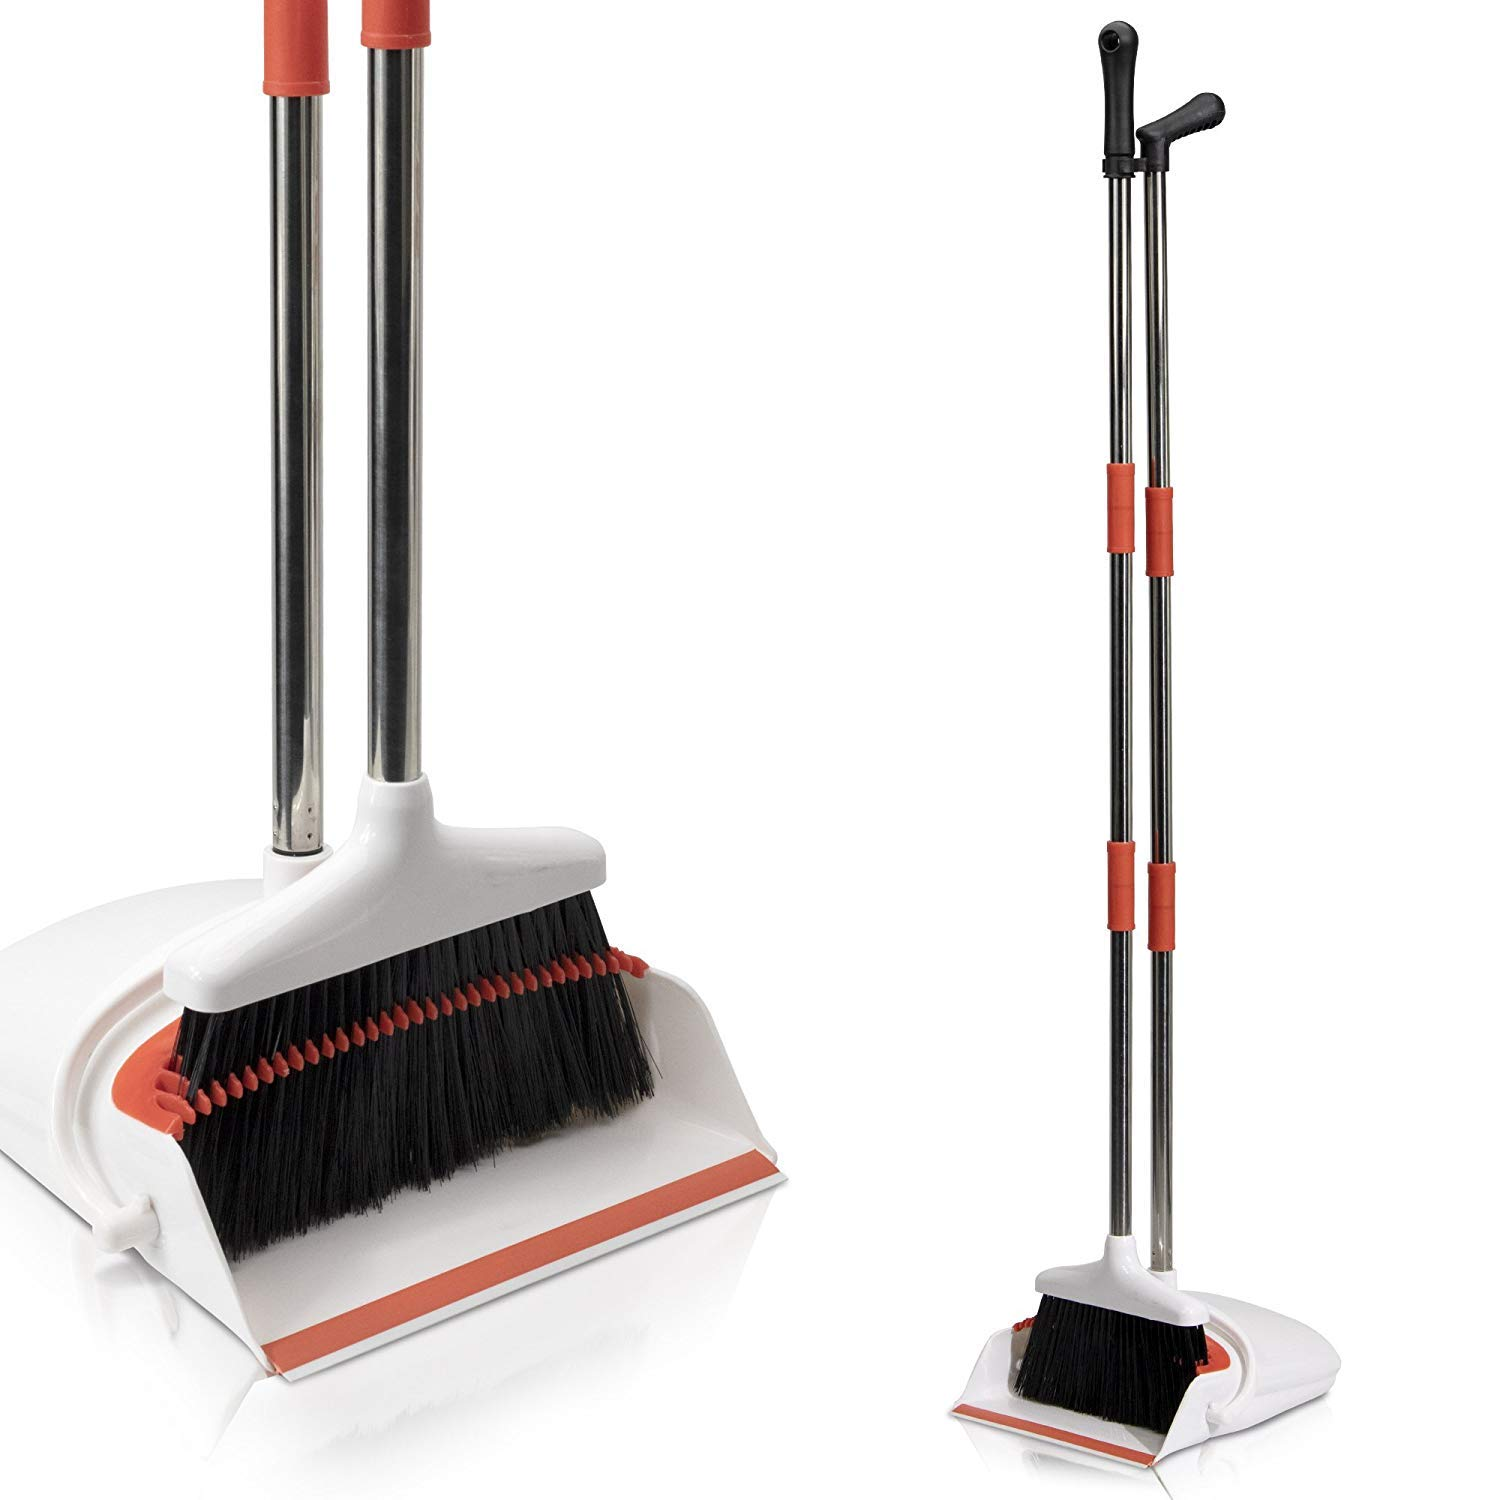 Primica Broom and Dustpan Set - Self-Cleaning Broom Bristles - Ideal Kitchen, Home and Lobby Broom and Dustpan Combo - Premium Brush, Wisp and Dust Cleaner by Primica